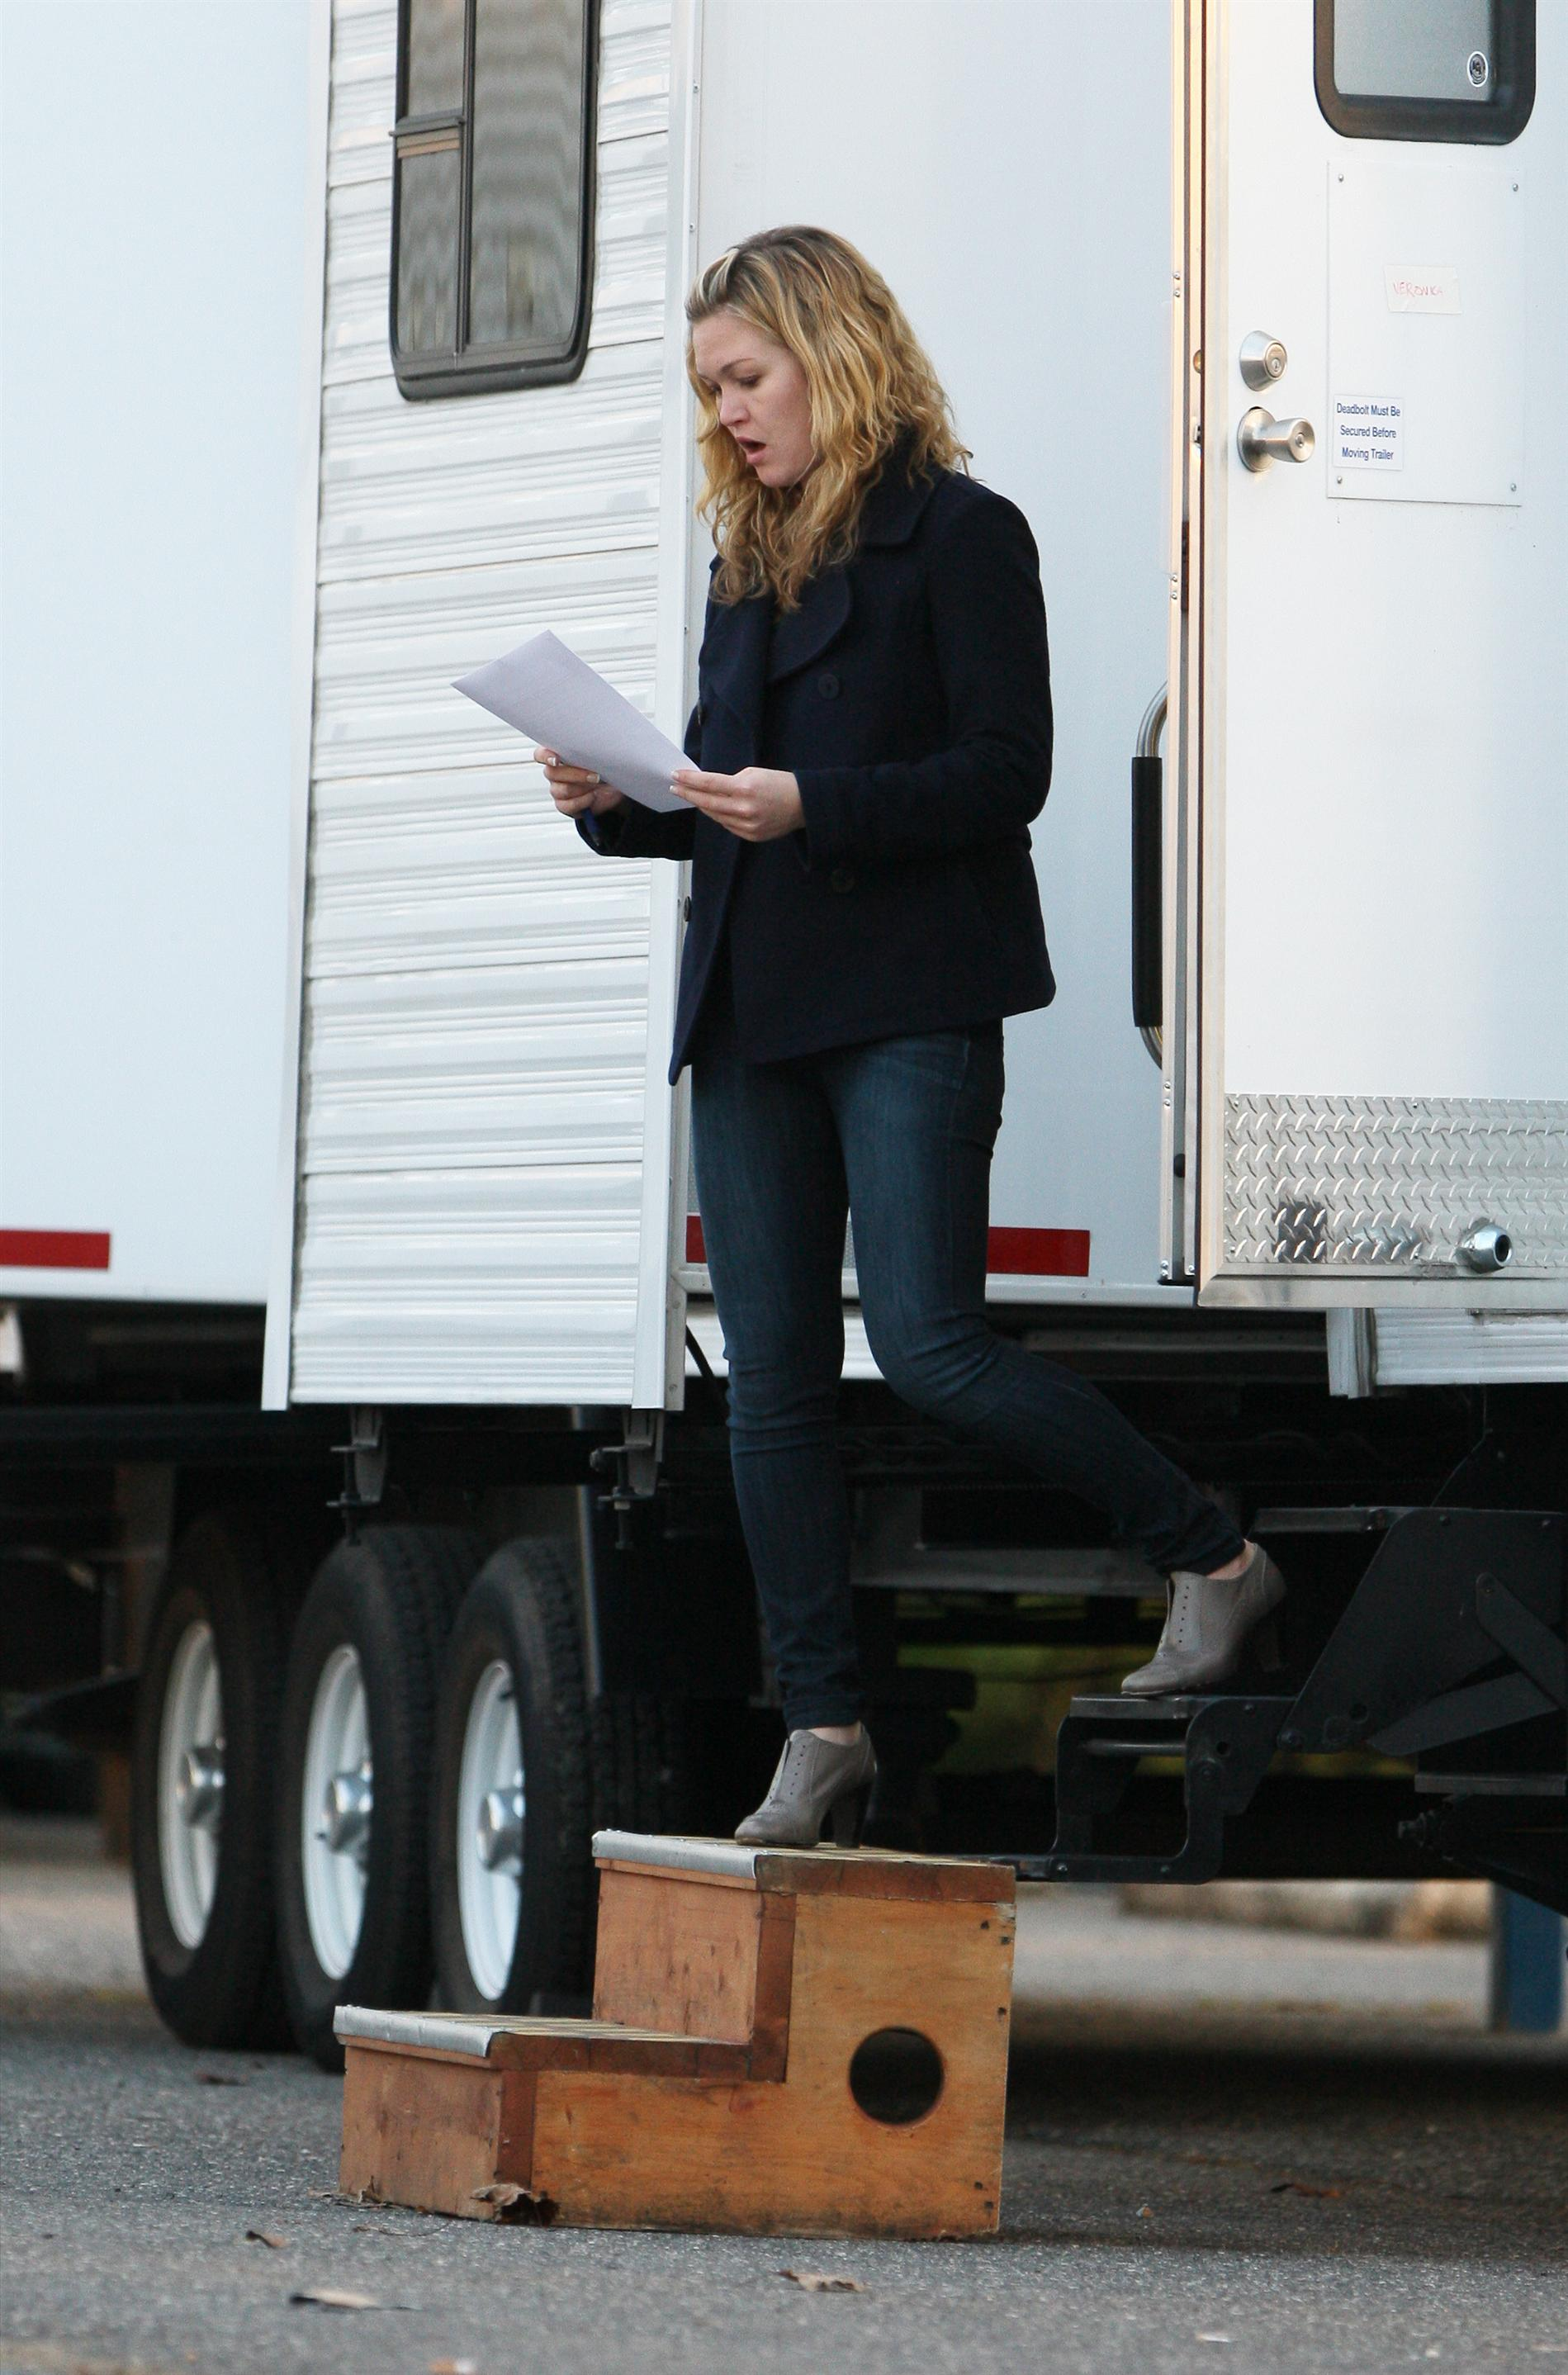 898302458_Julia_Stiles_on_the_set_of_The_Silver_Linings_Playbook1_122_596lo.jpg